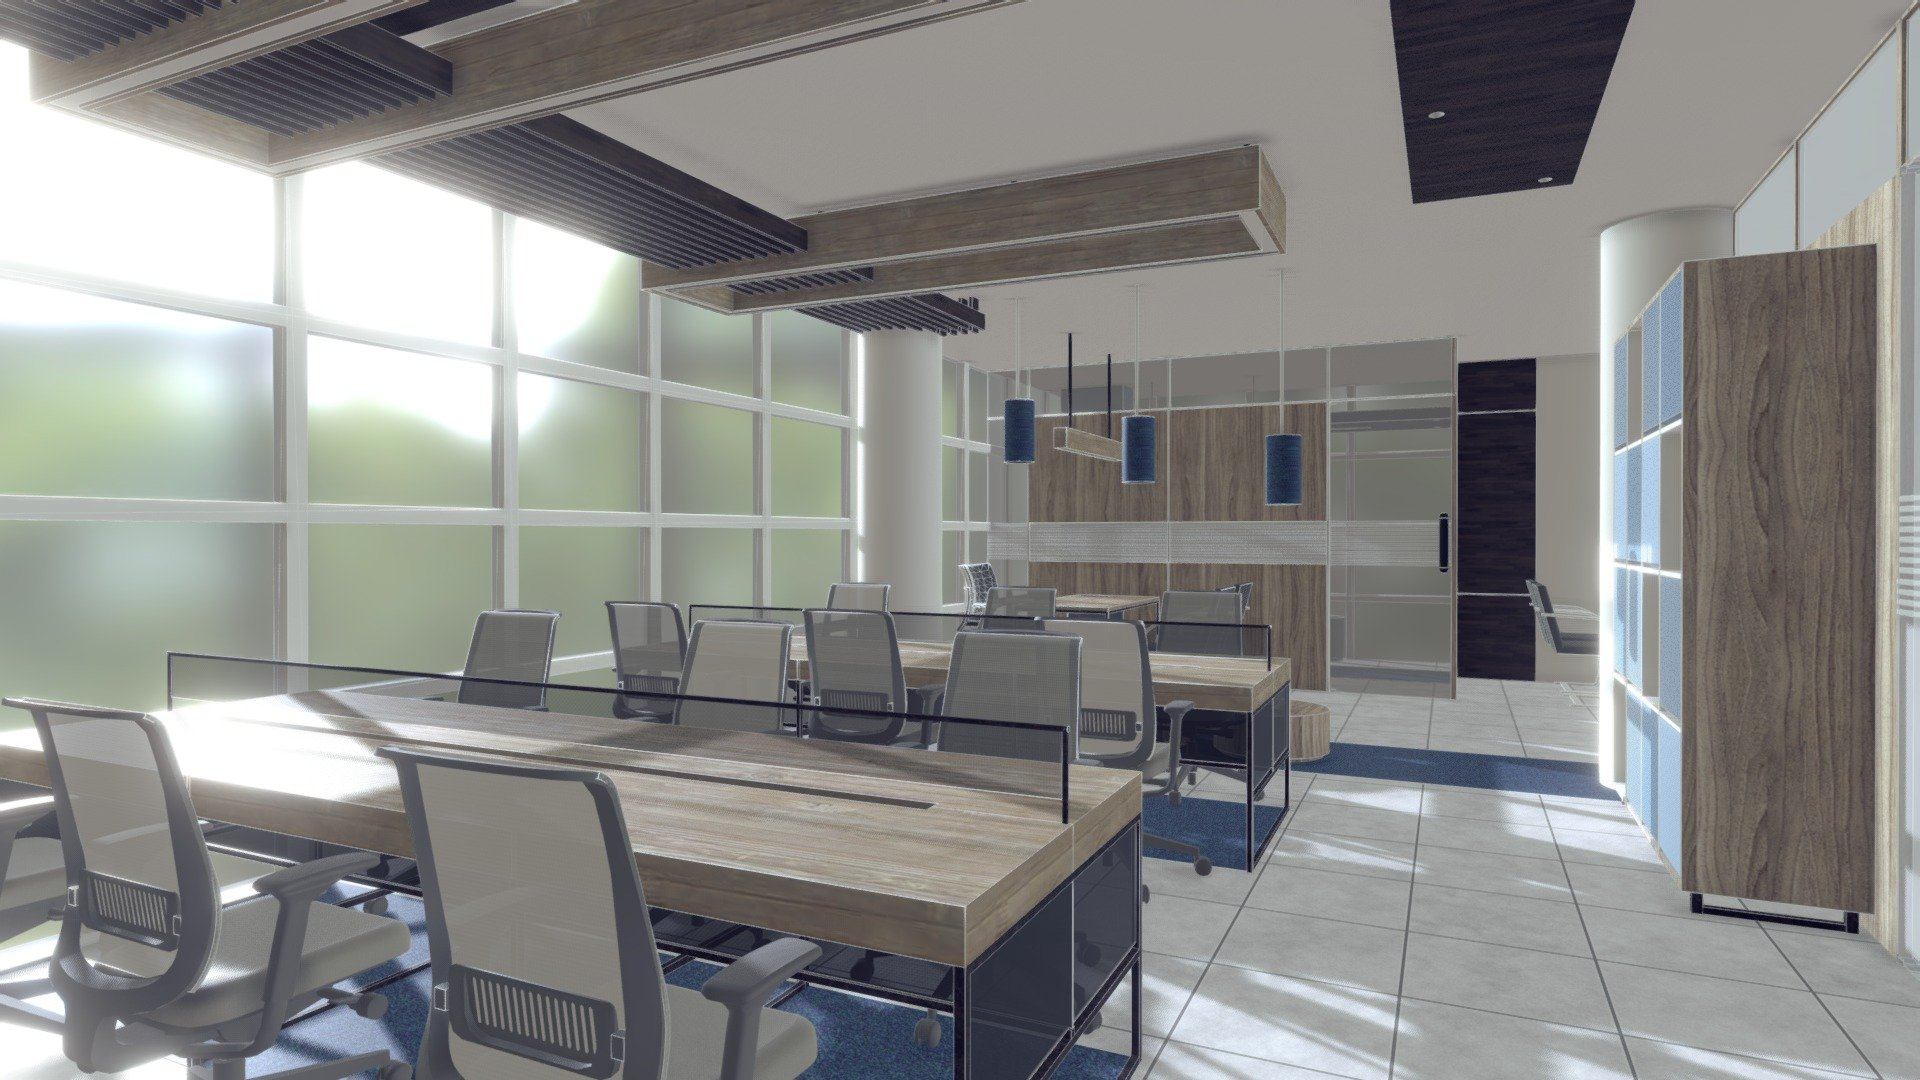 Cars For Free >> Office Interior - Download Free 3D model by MD Ashfaq Bin Arif (@tafar165) [a95a81f] - Sketchfab